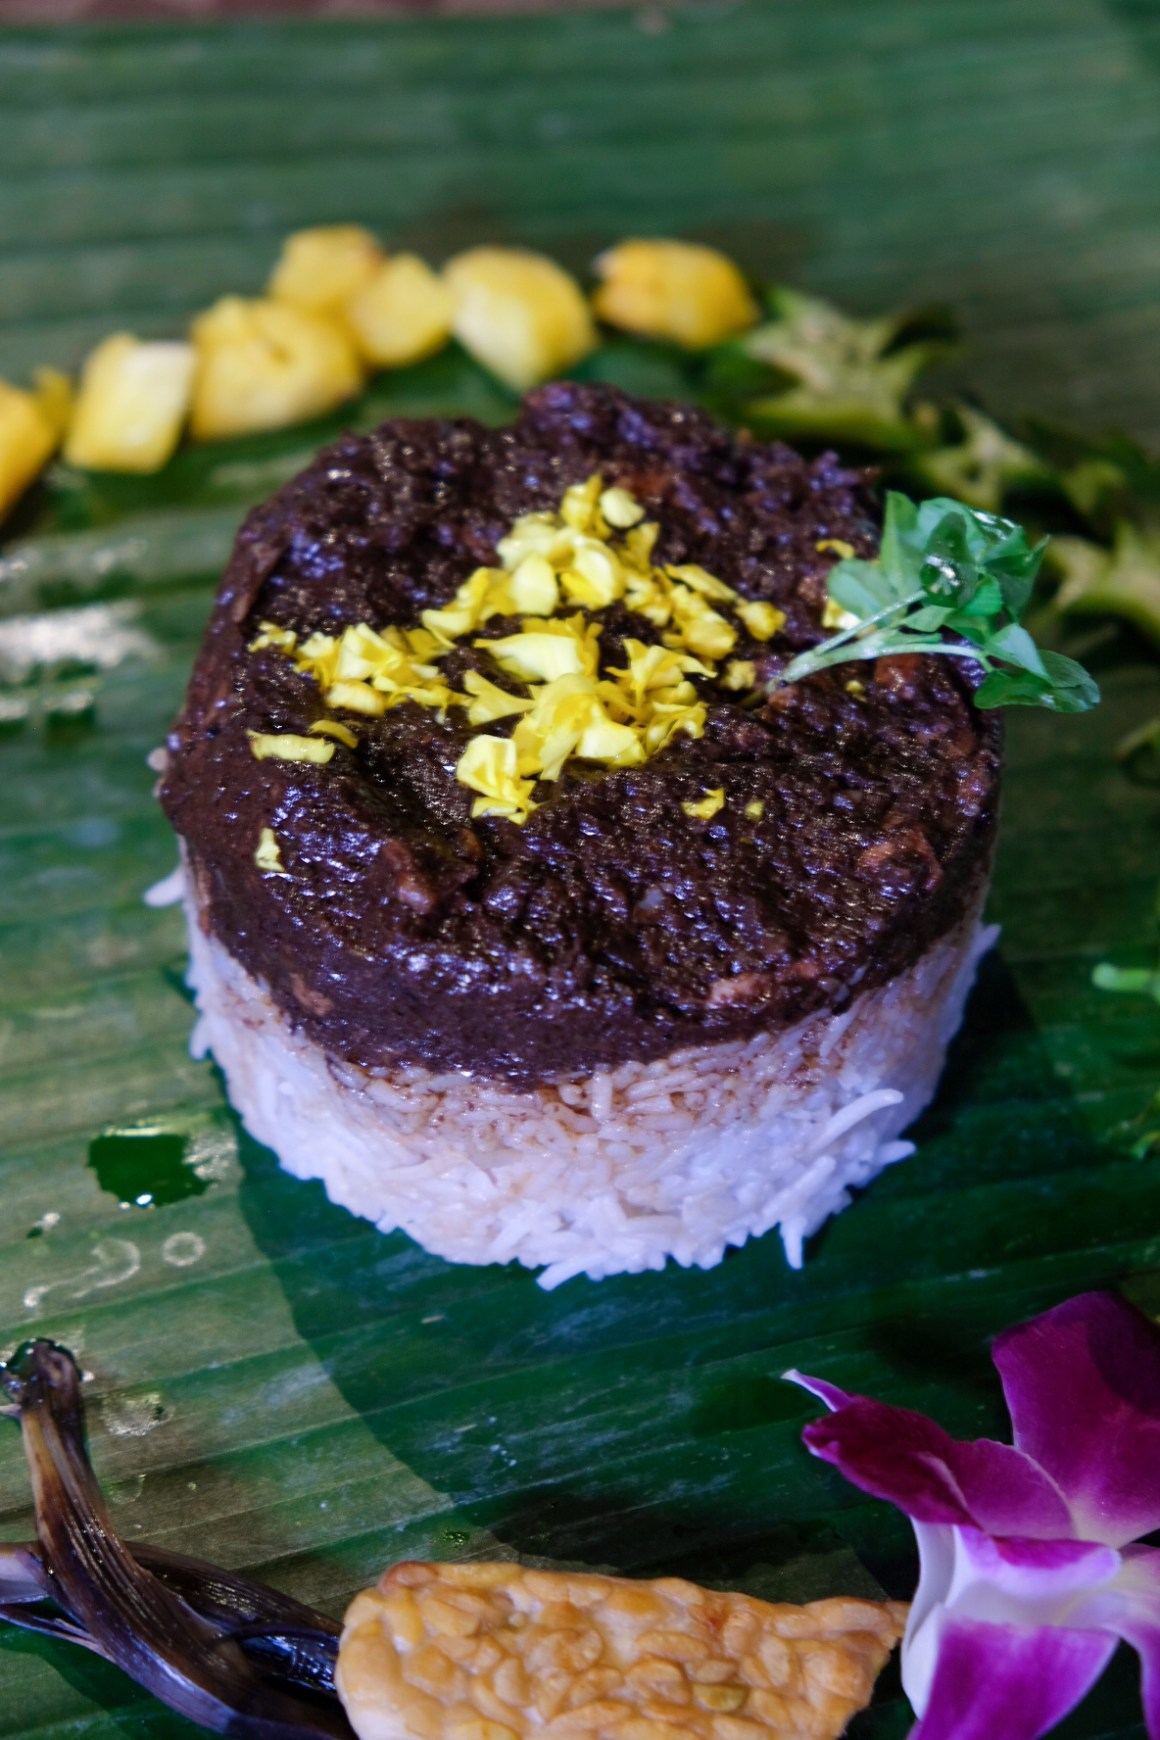 Xin Tekka The Food Hall At Tekka Place - Tian of Ayam Buah Keluak with Blue Pea Rice by Casa Bom Vento Express